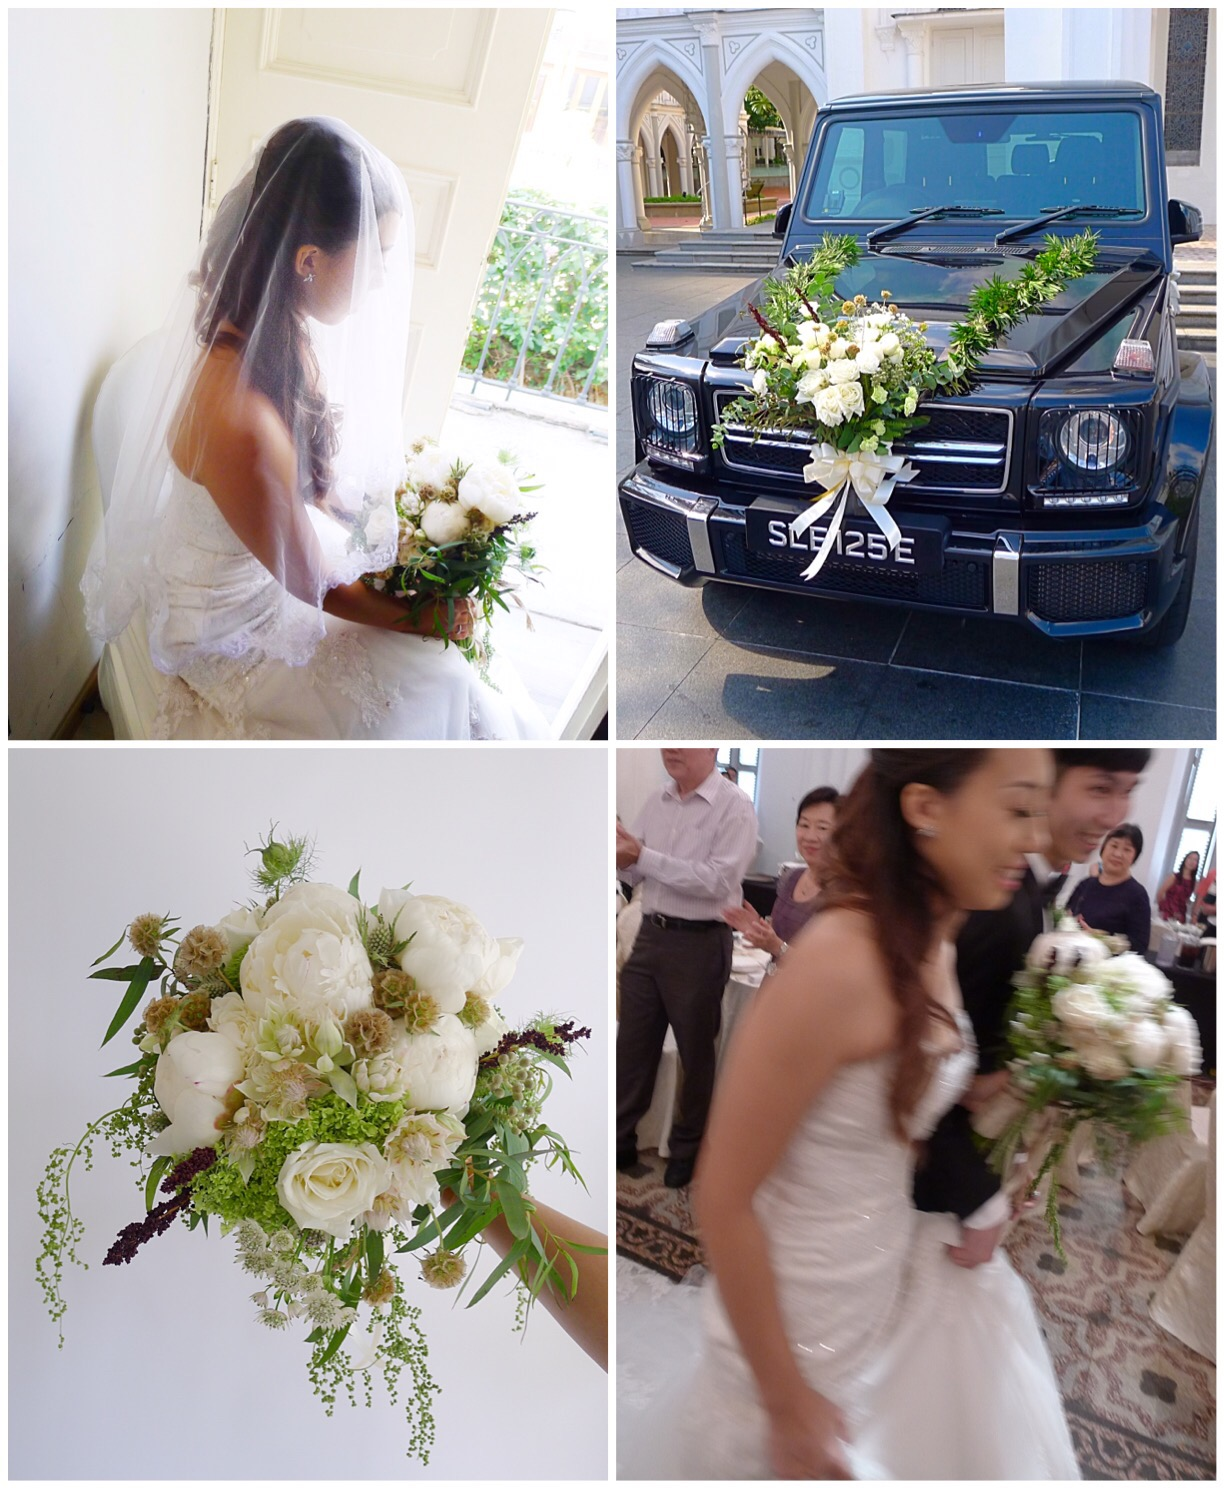 wedding bridal flowers bride bridal bouquet Archives - One Olive